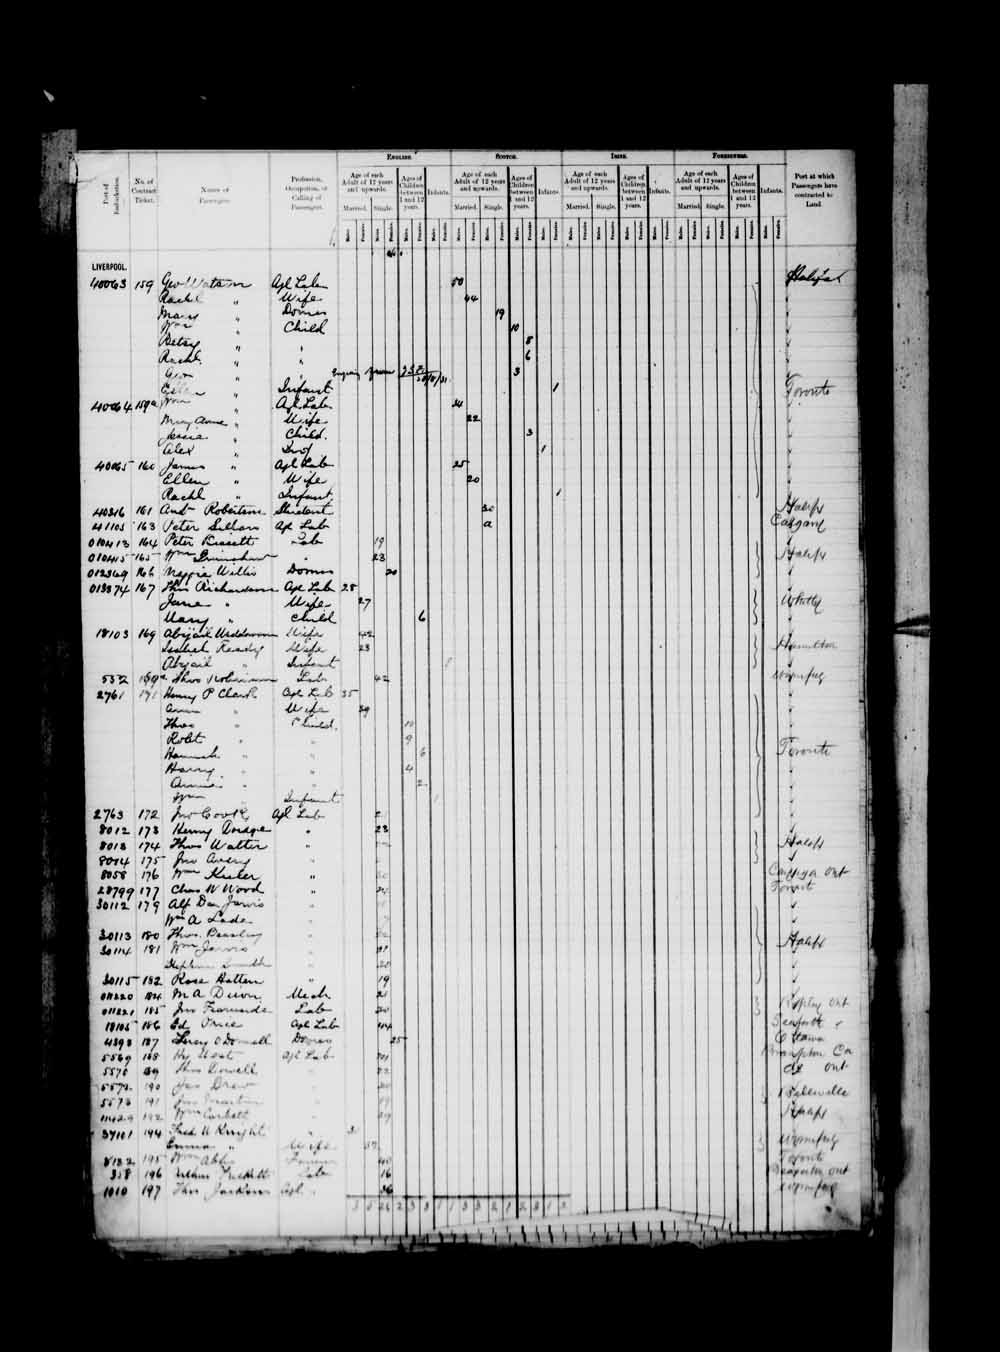 Digitized page of Passenger Lists for Image No.: e003674943